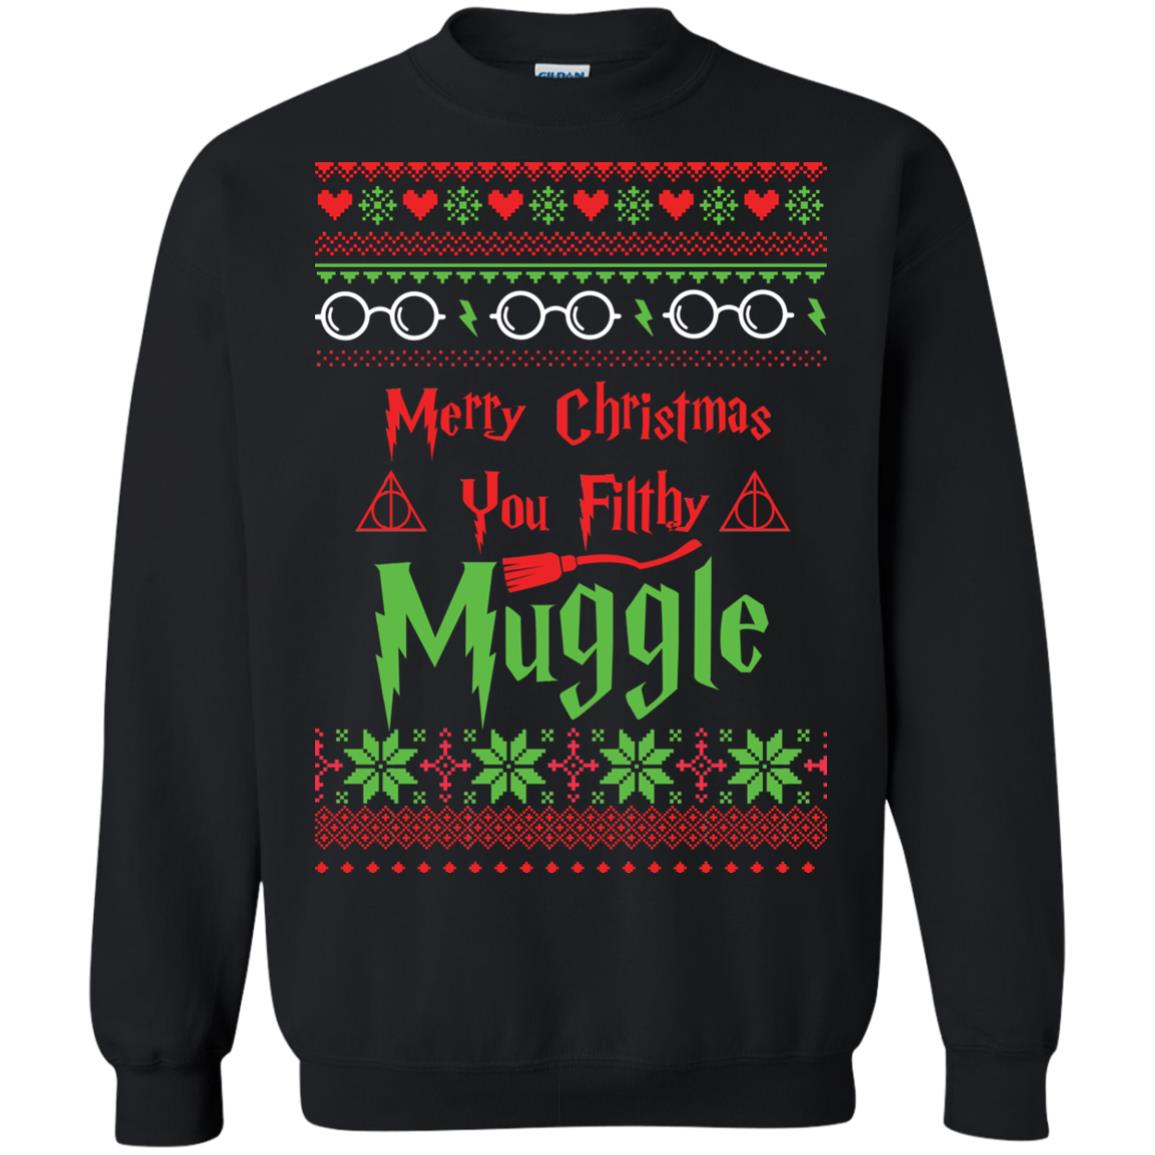 image 776px Merry Christmas You Filthy Muggle Harry Potter Christmas Sweater